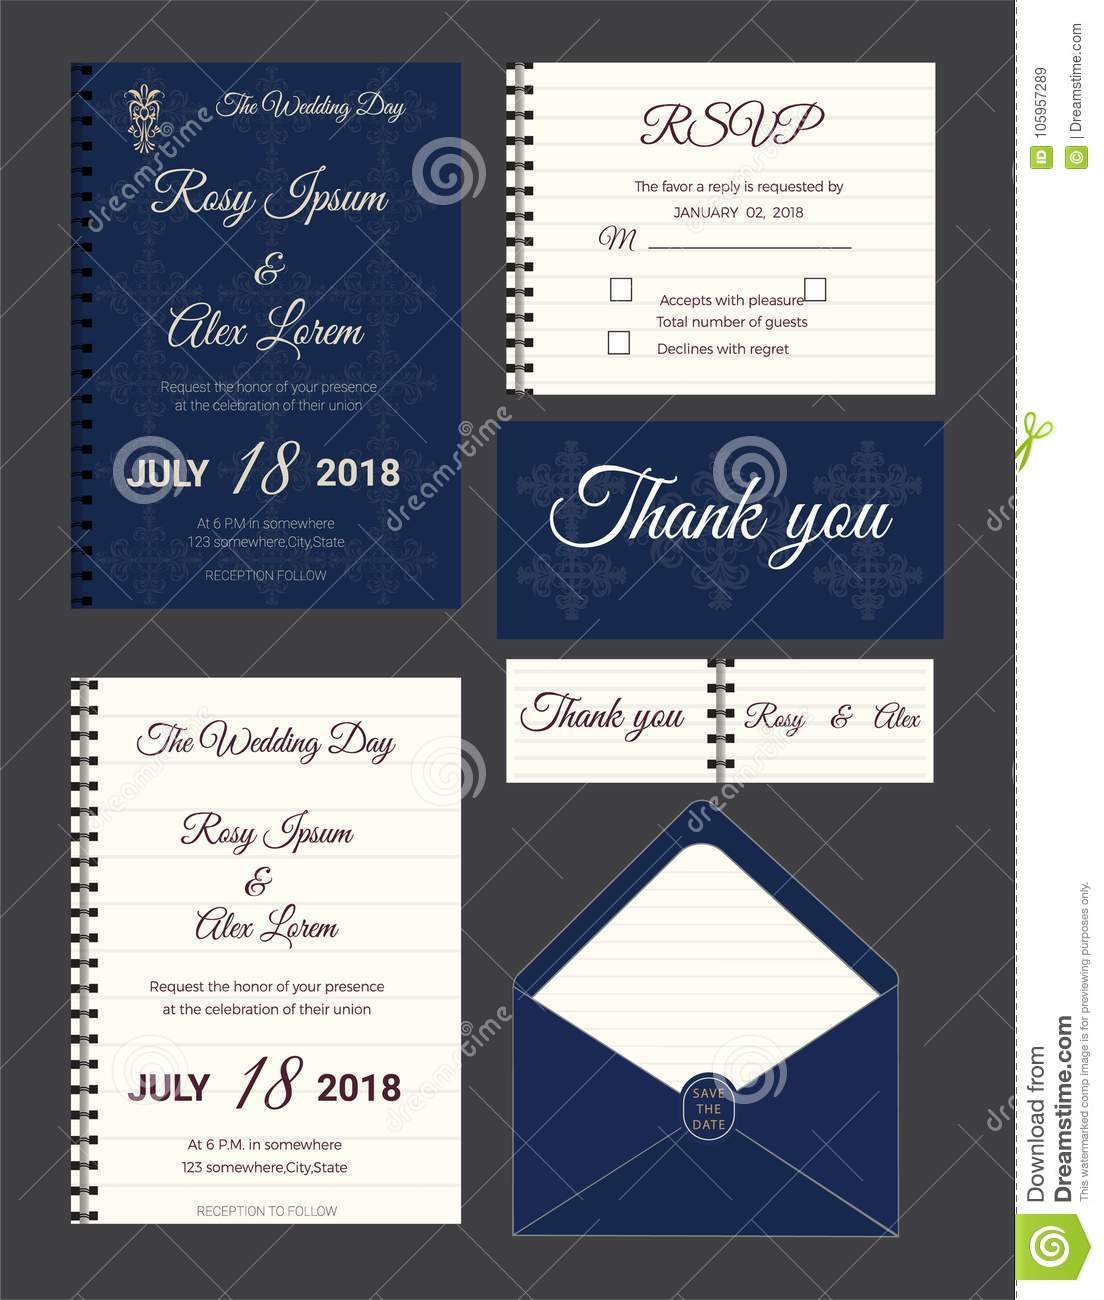 Wedding Invitation Save The Date Rsvp Card Thank You Card Gift Tags Place Cards Respond Card Stock Vector Illustration Of Date Ornament 105957289